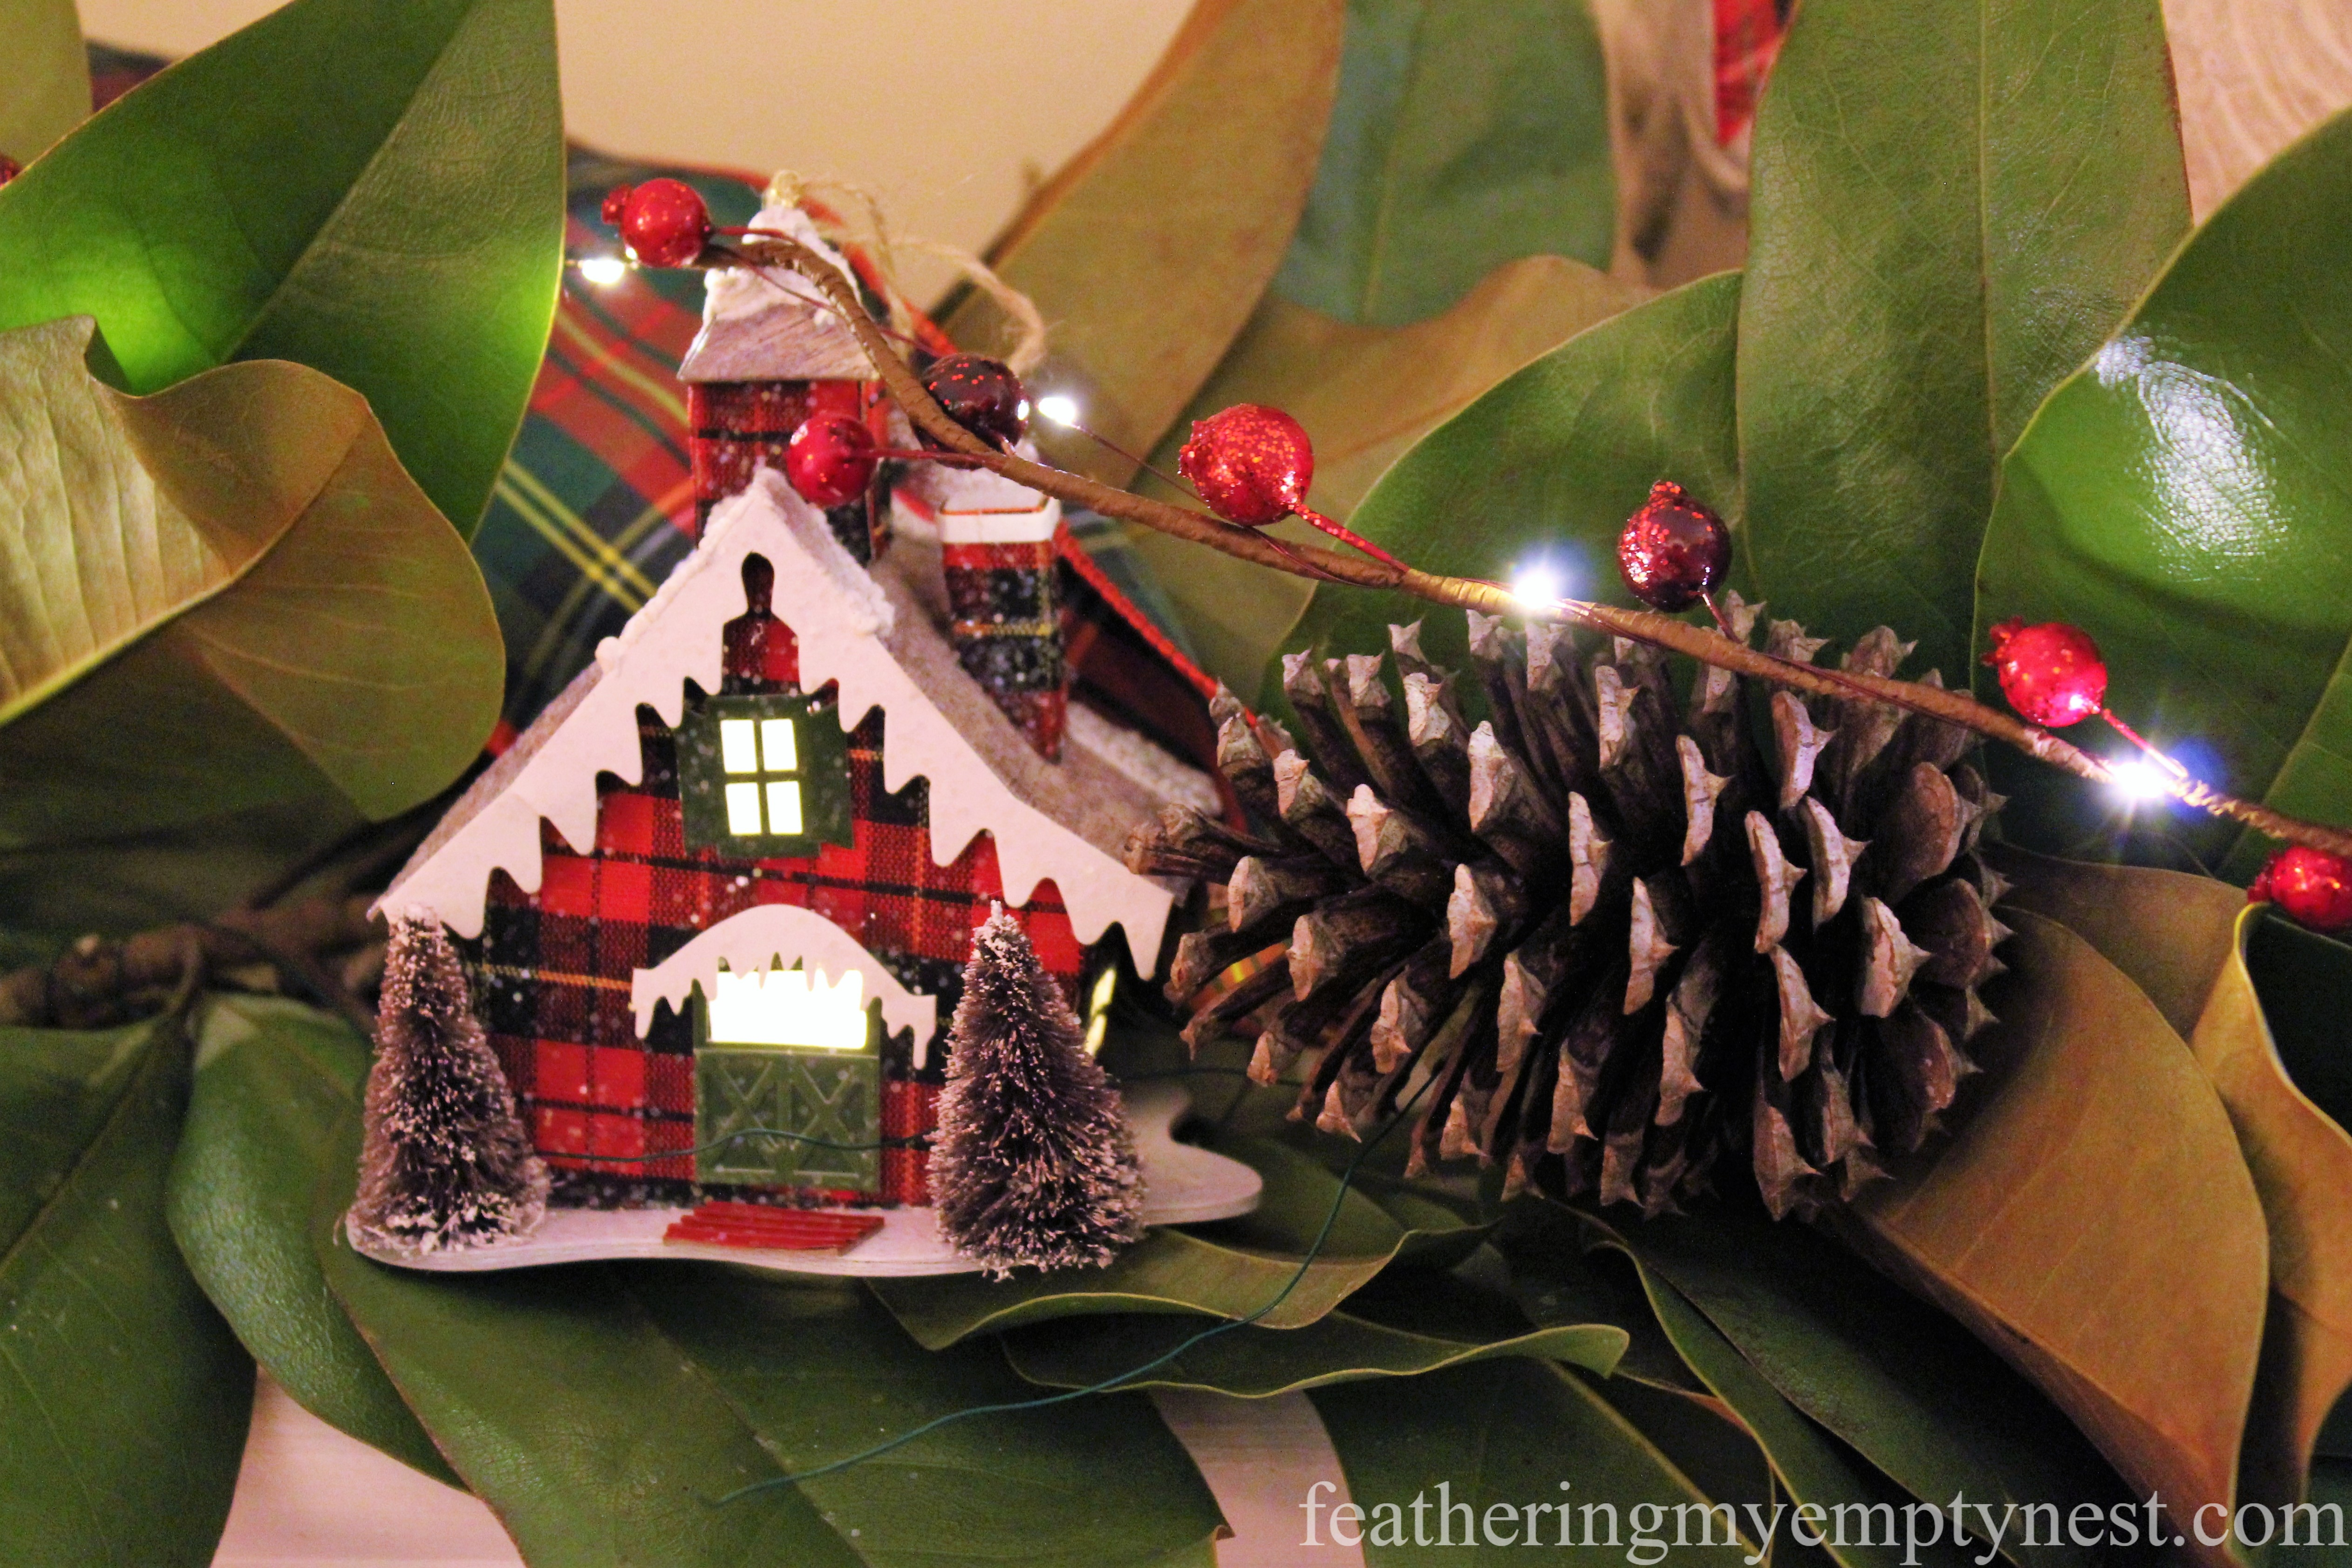 Plaid house ornaments from Pier One adorn a fresh magnolia garland --Mad For Plaid Christmas Mantel